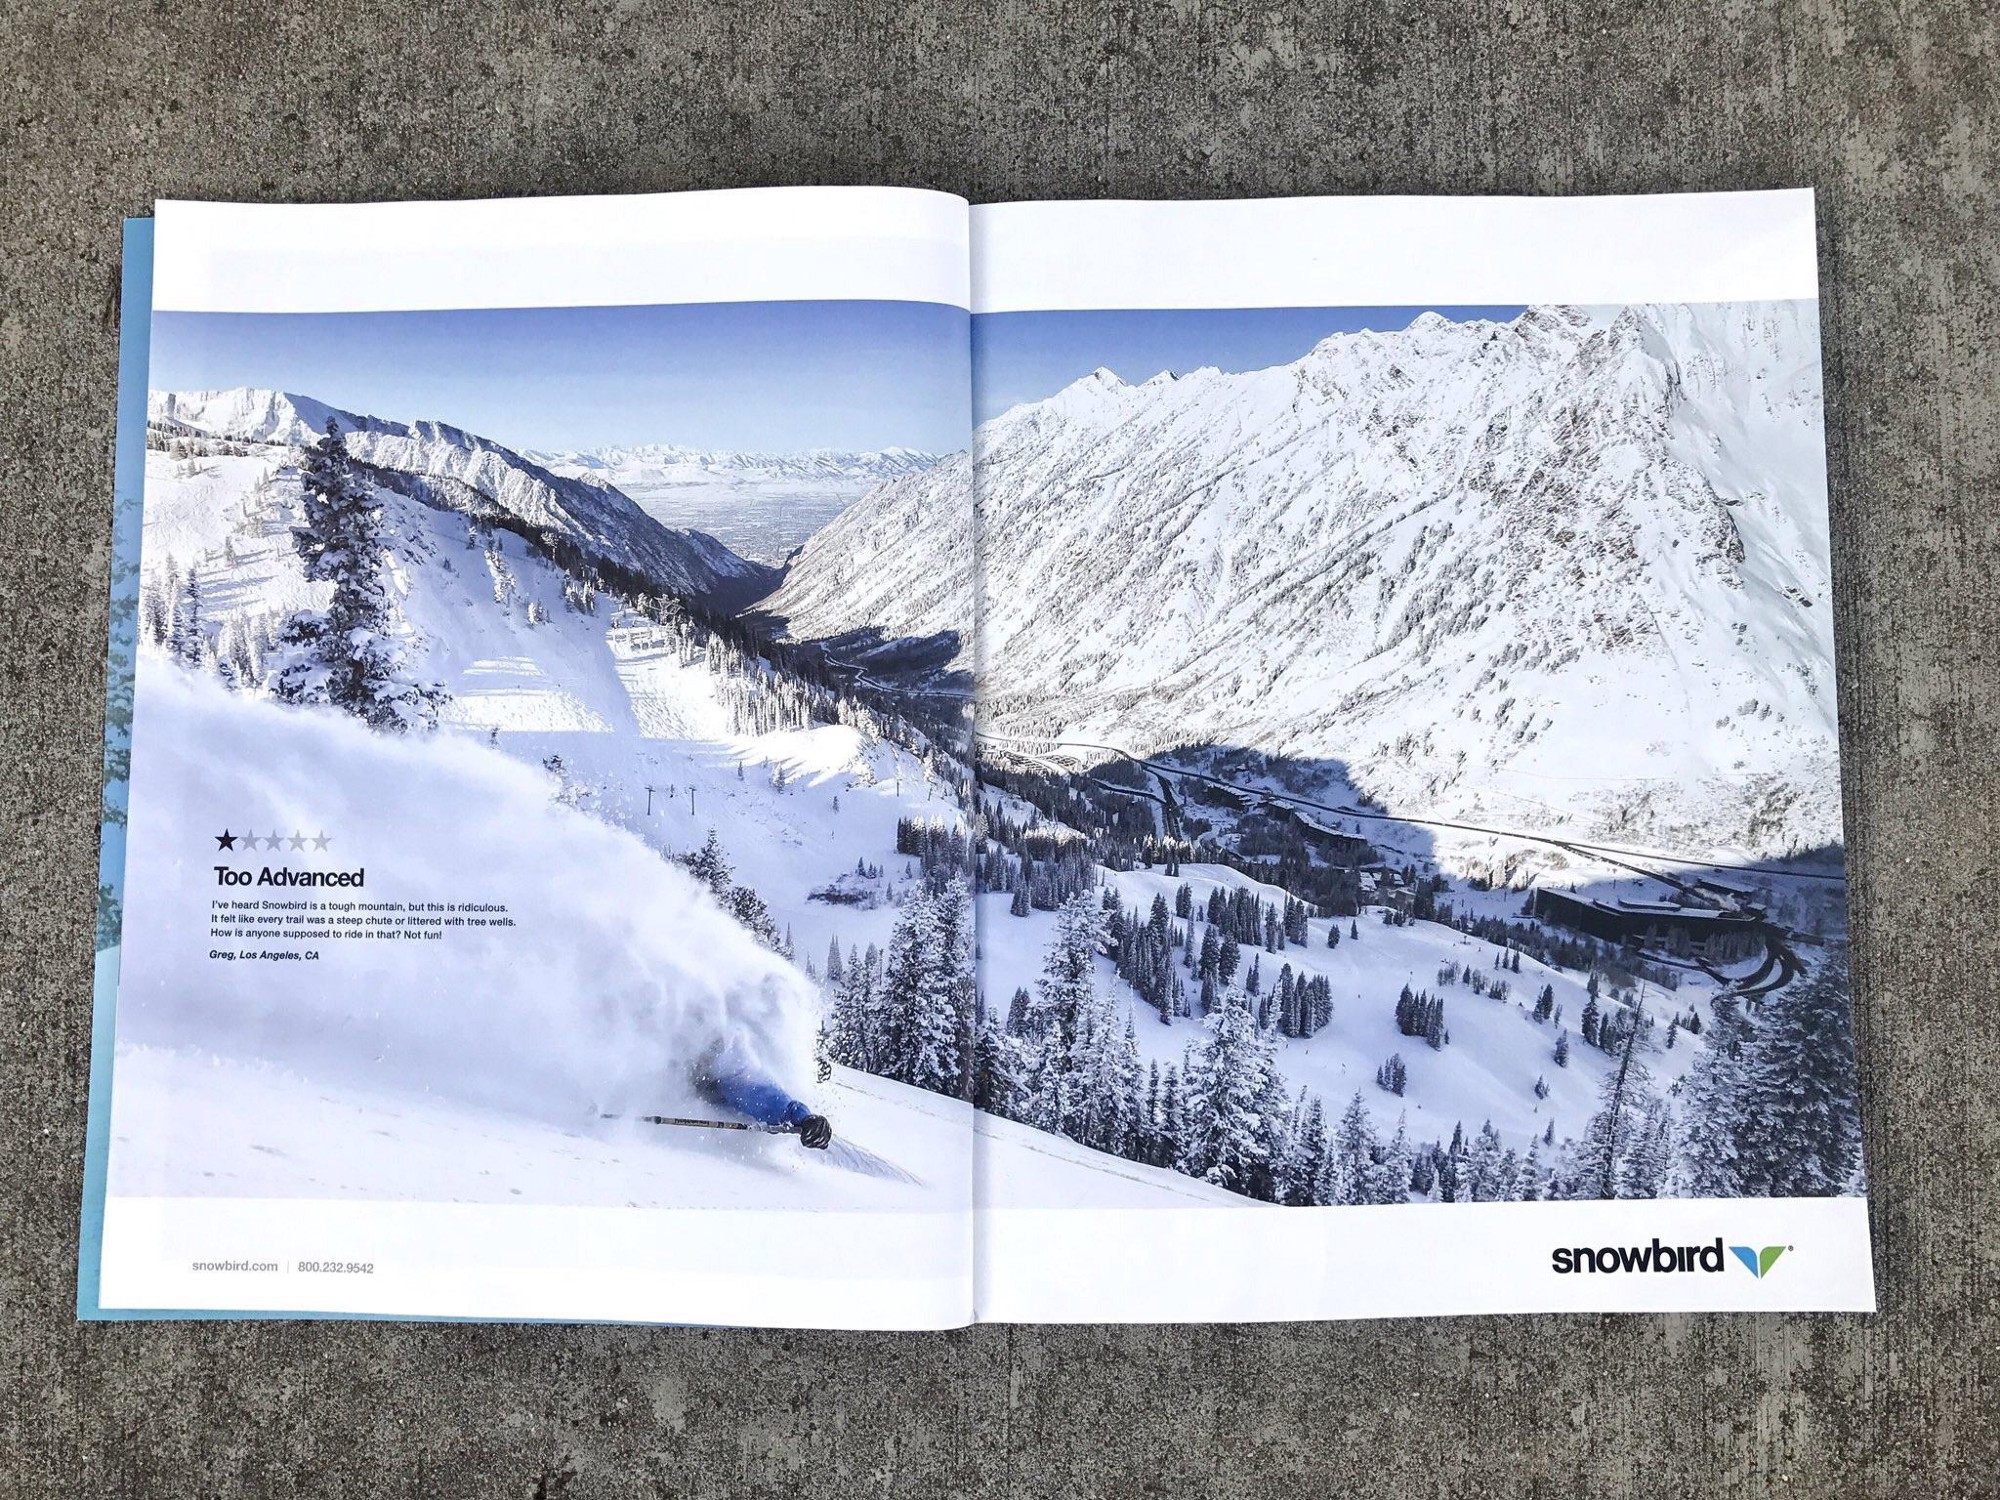 A ski resort used a 1-star review in its (brilliant) ads